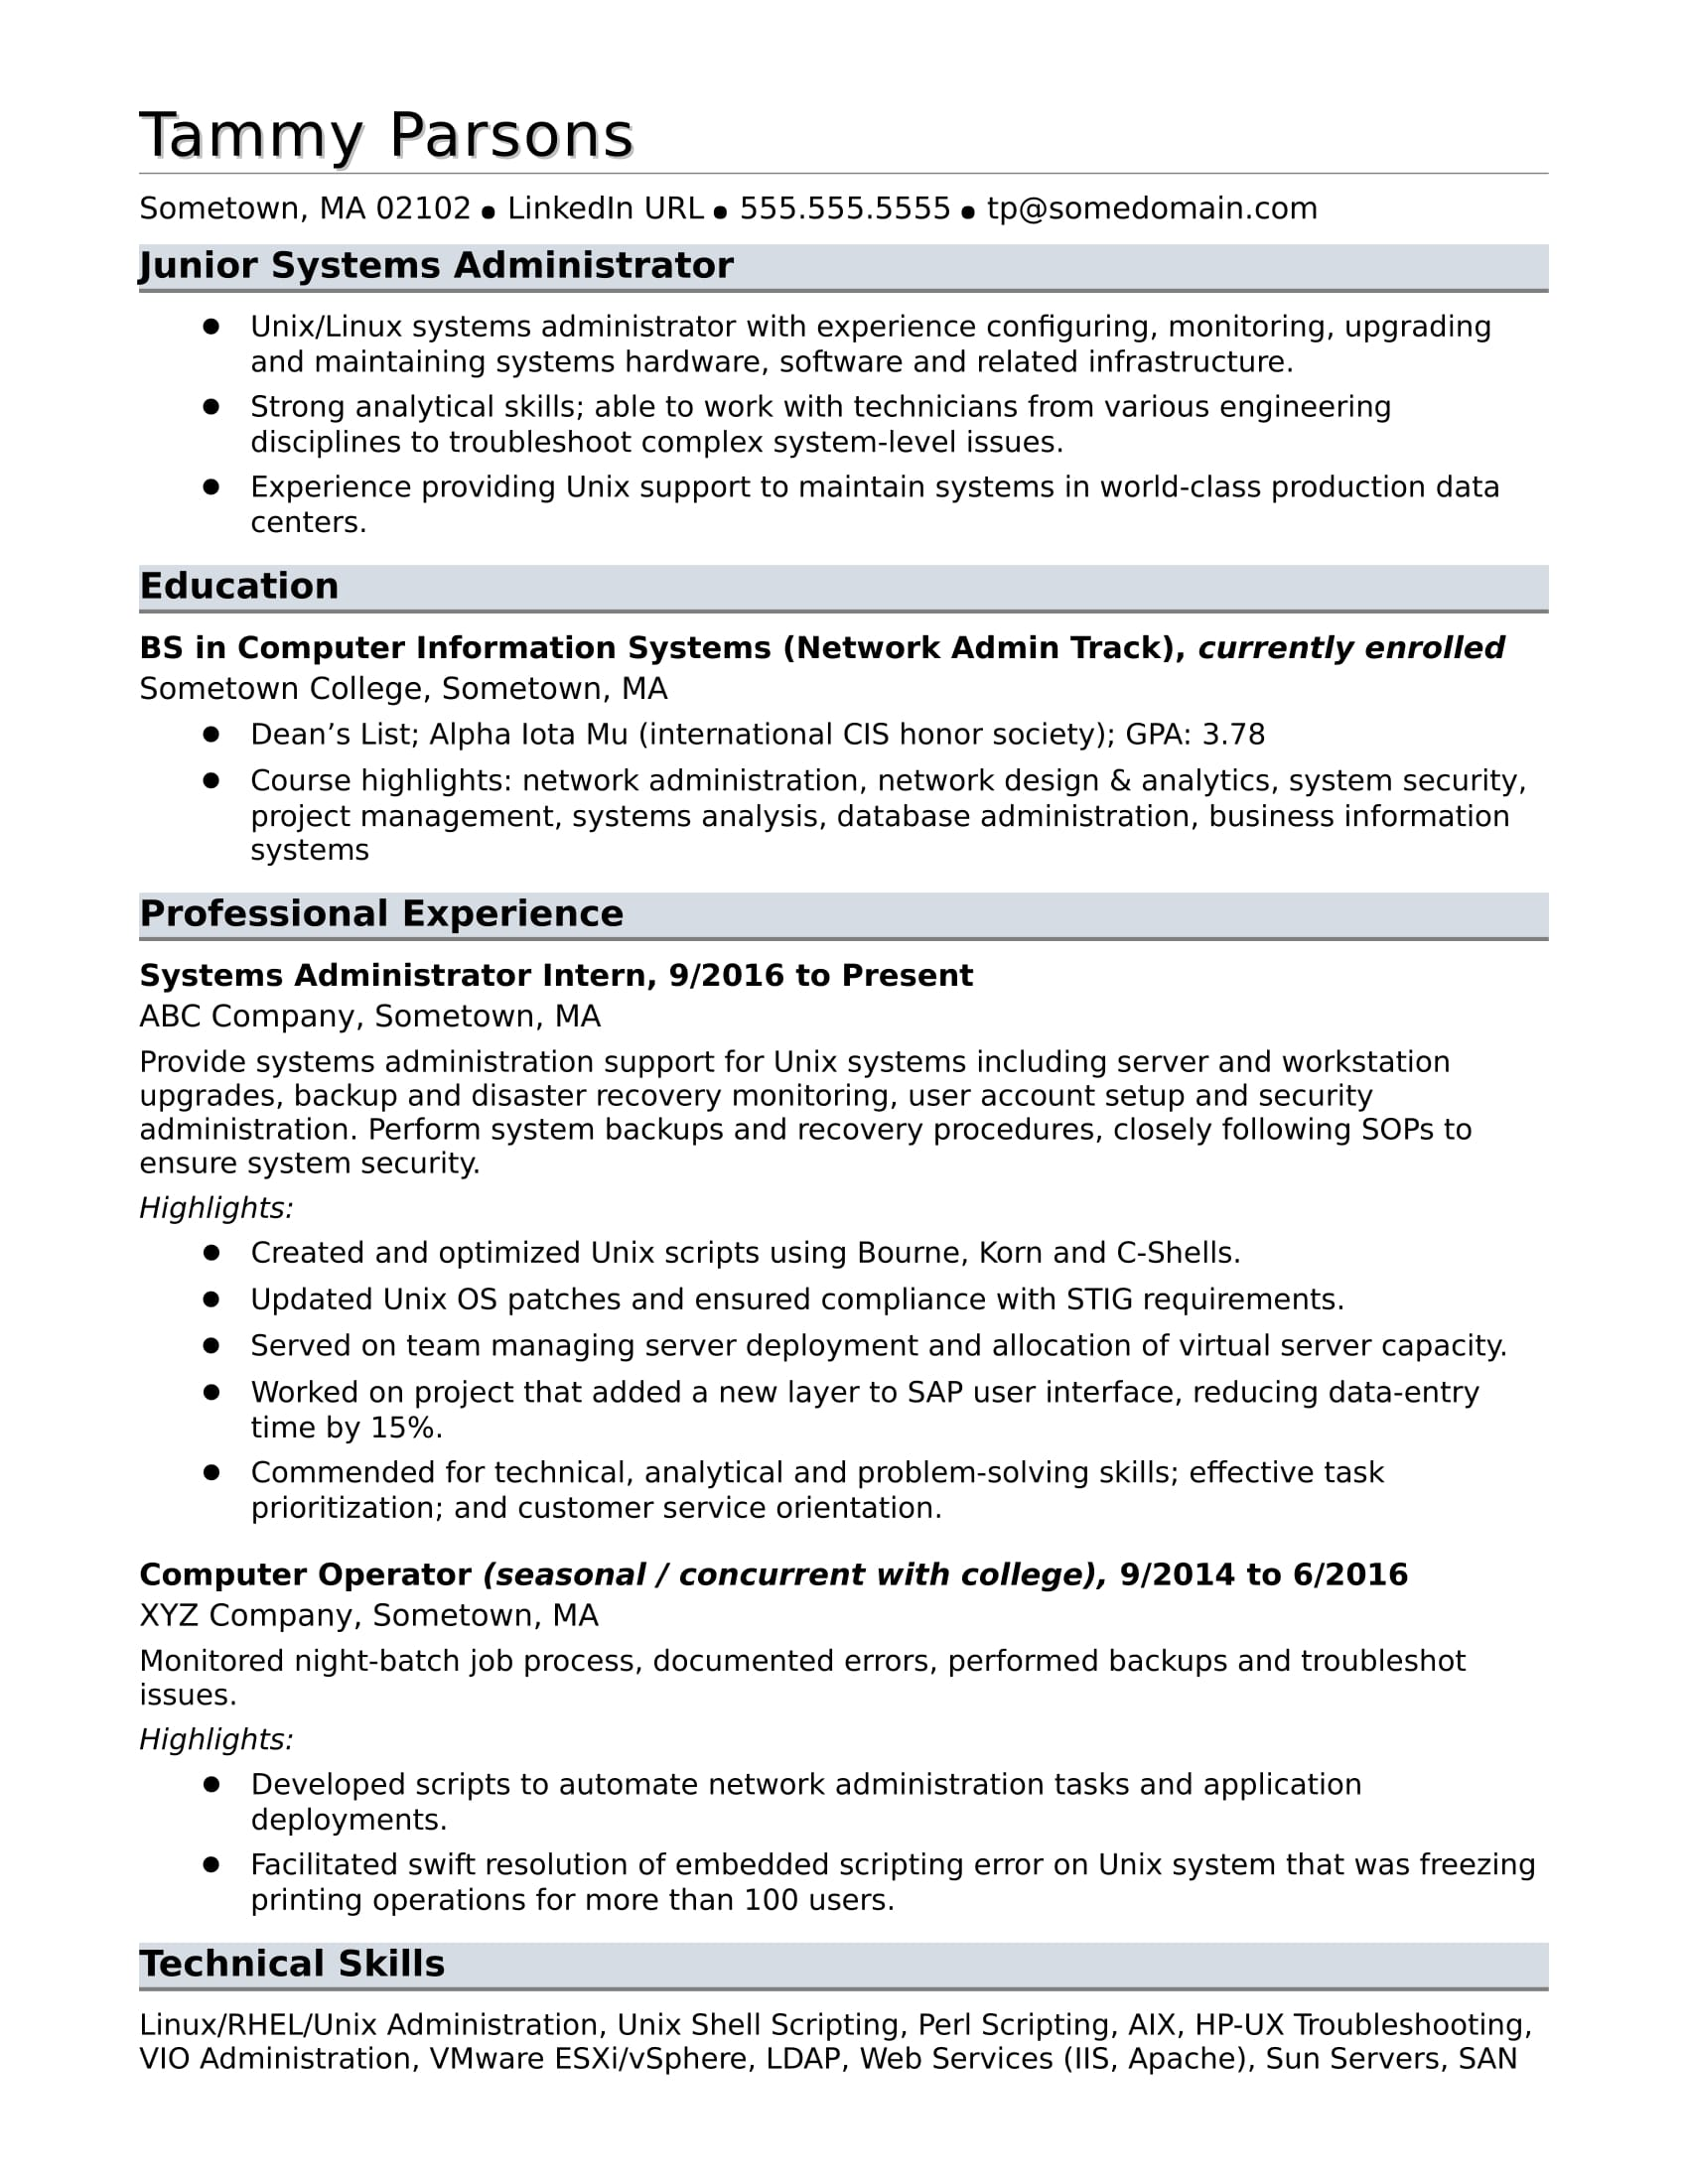 sample resume for an entry level systems administrator monster system admin format Resume System Admin Resume Format